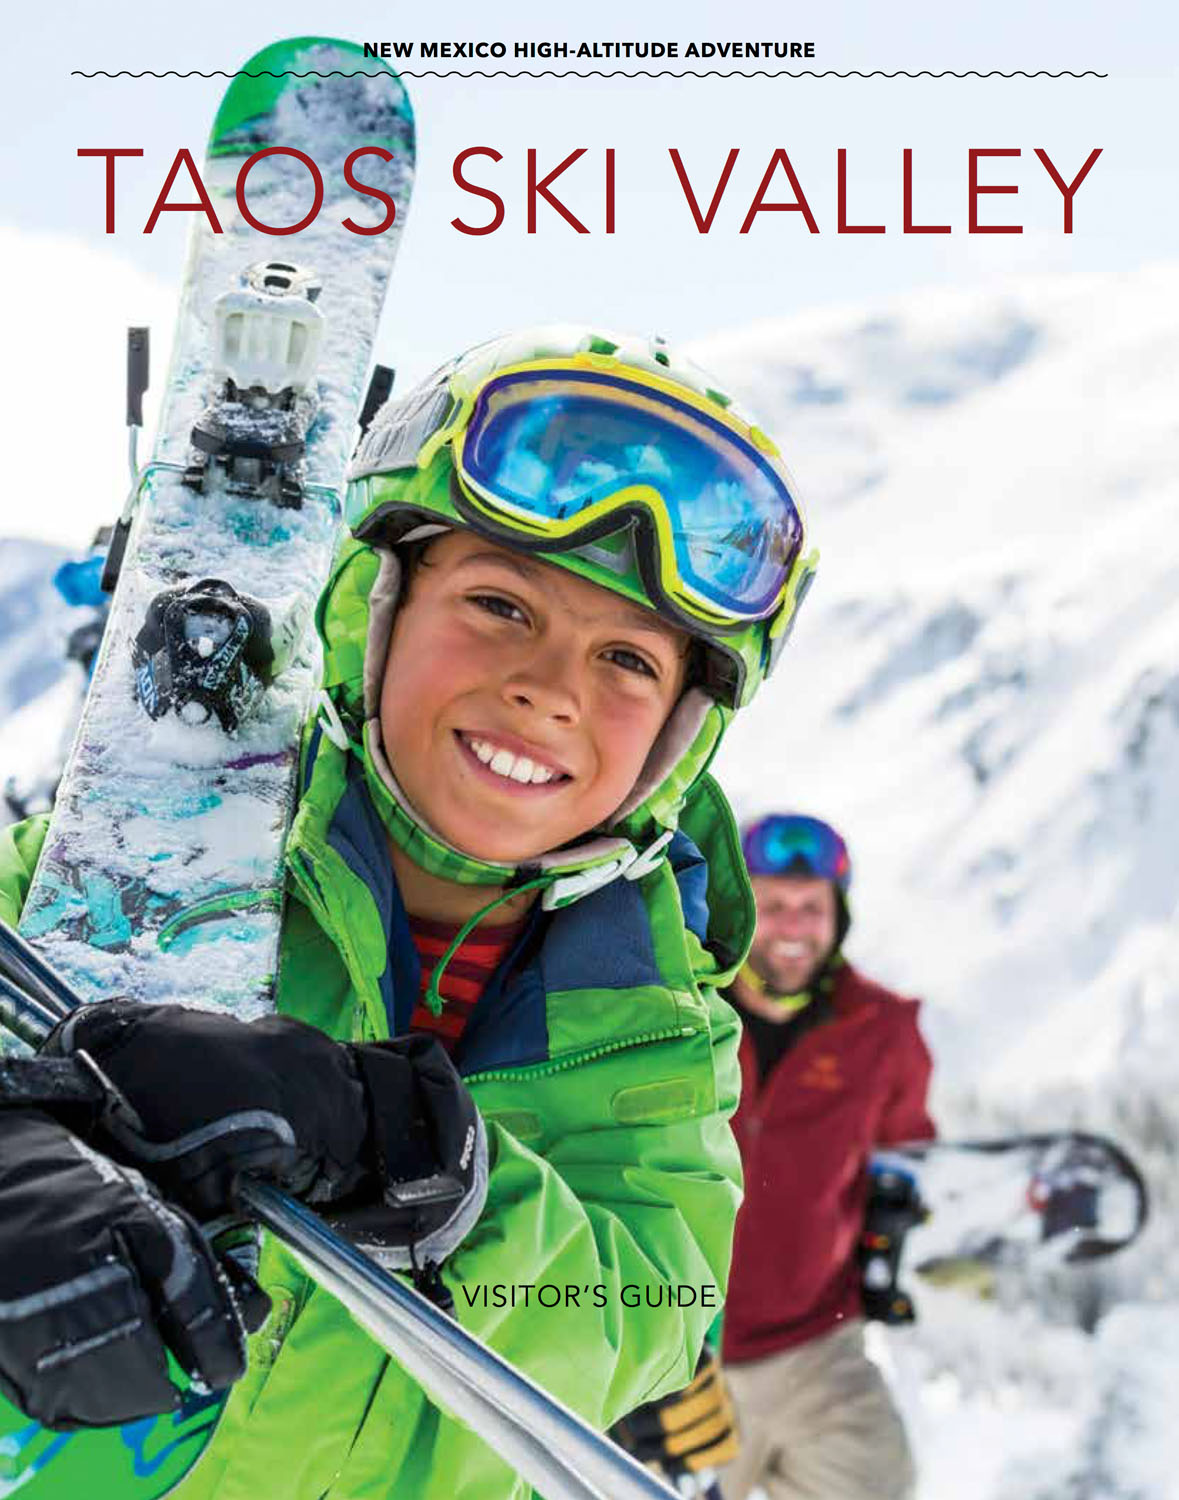 Taos_Ski_Valley_Visitor_Guide_2015_Cover_DeYoung